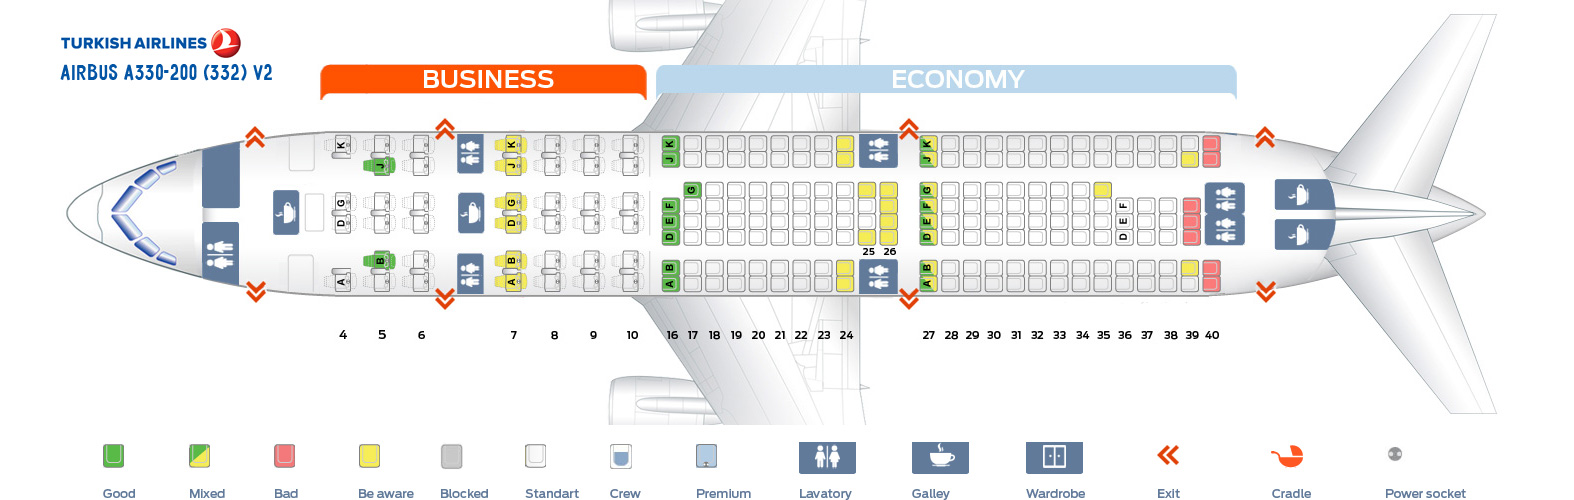 Seat Map Airbus A330-200 V2 Turkish Airlines